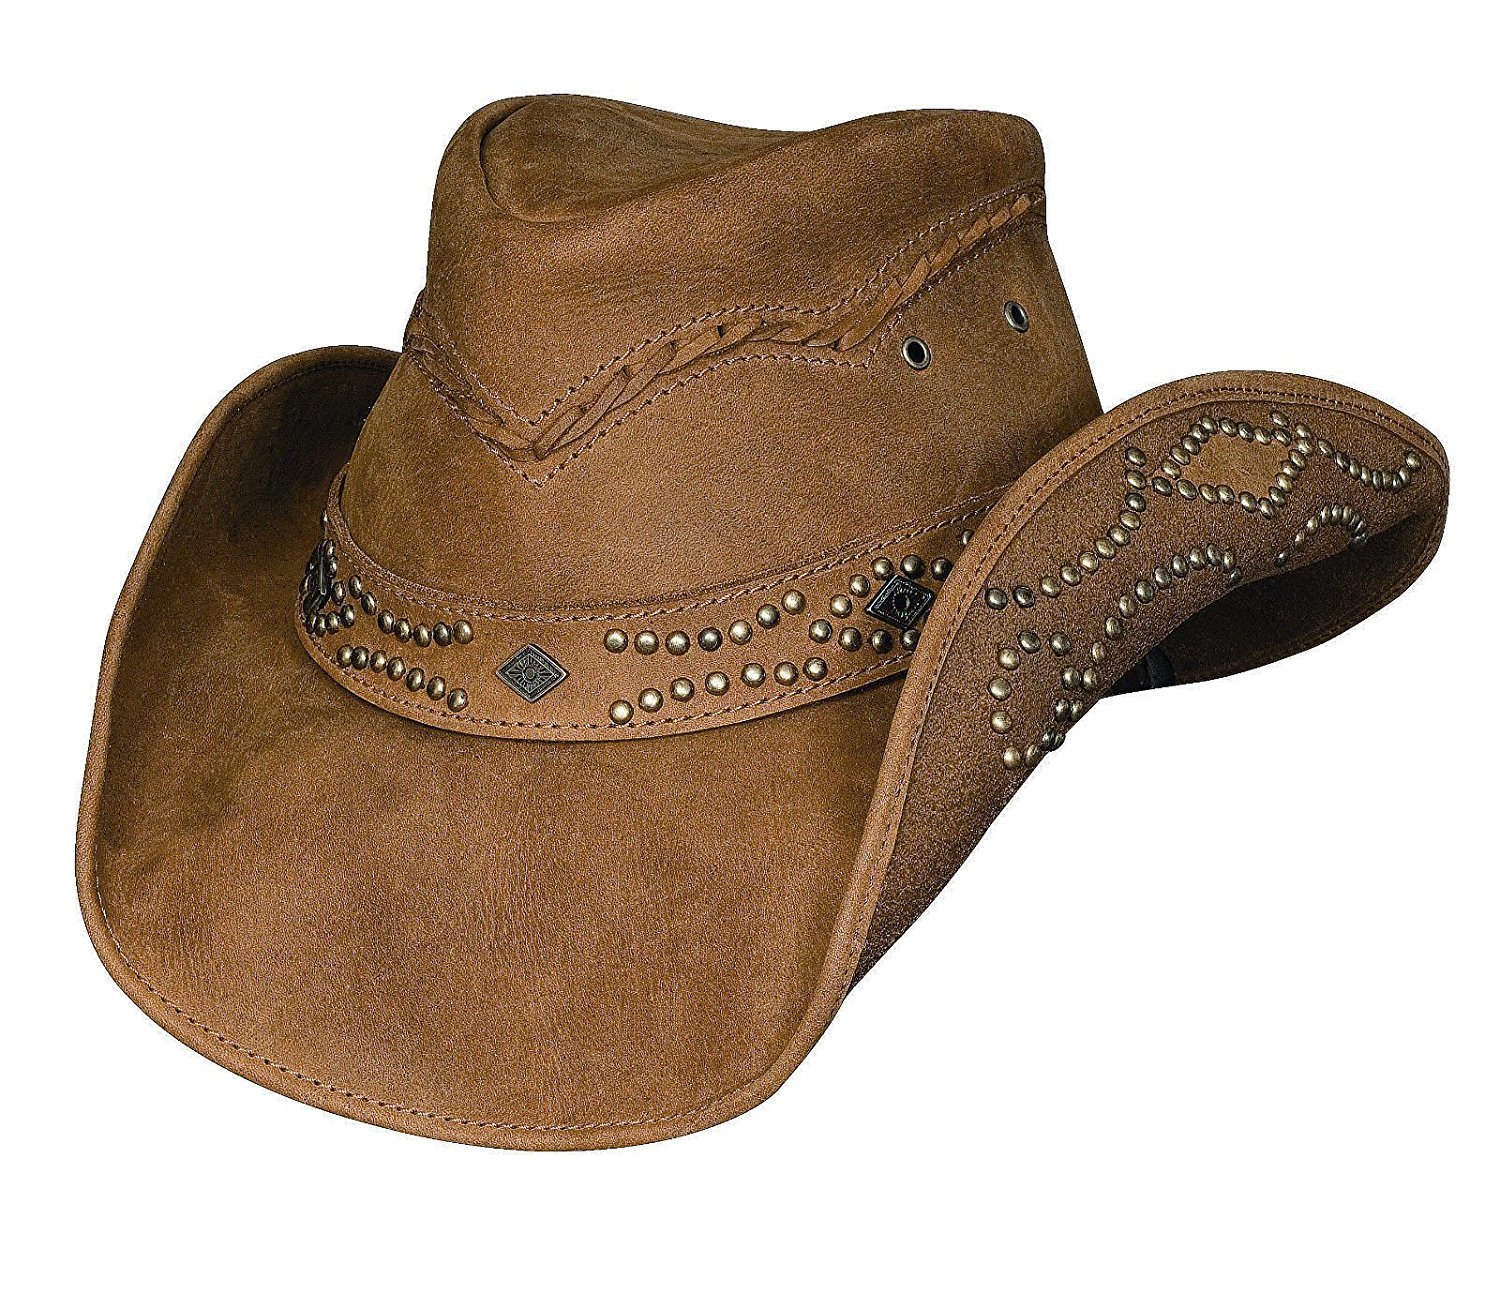 NASIR ALI Head N Home Brown Leather Hand Crafted Style Pure Leather HAT